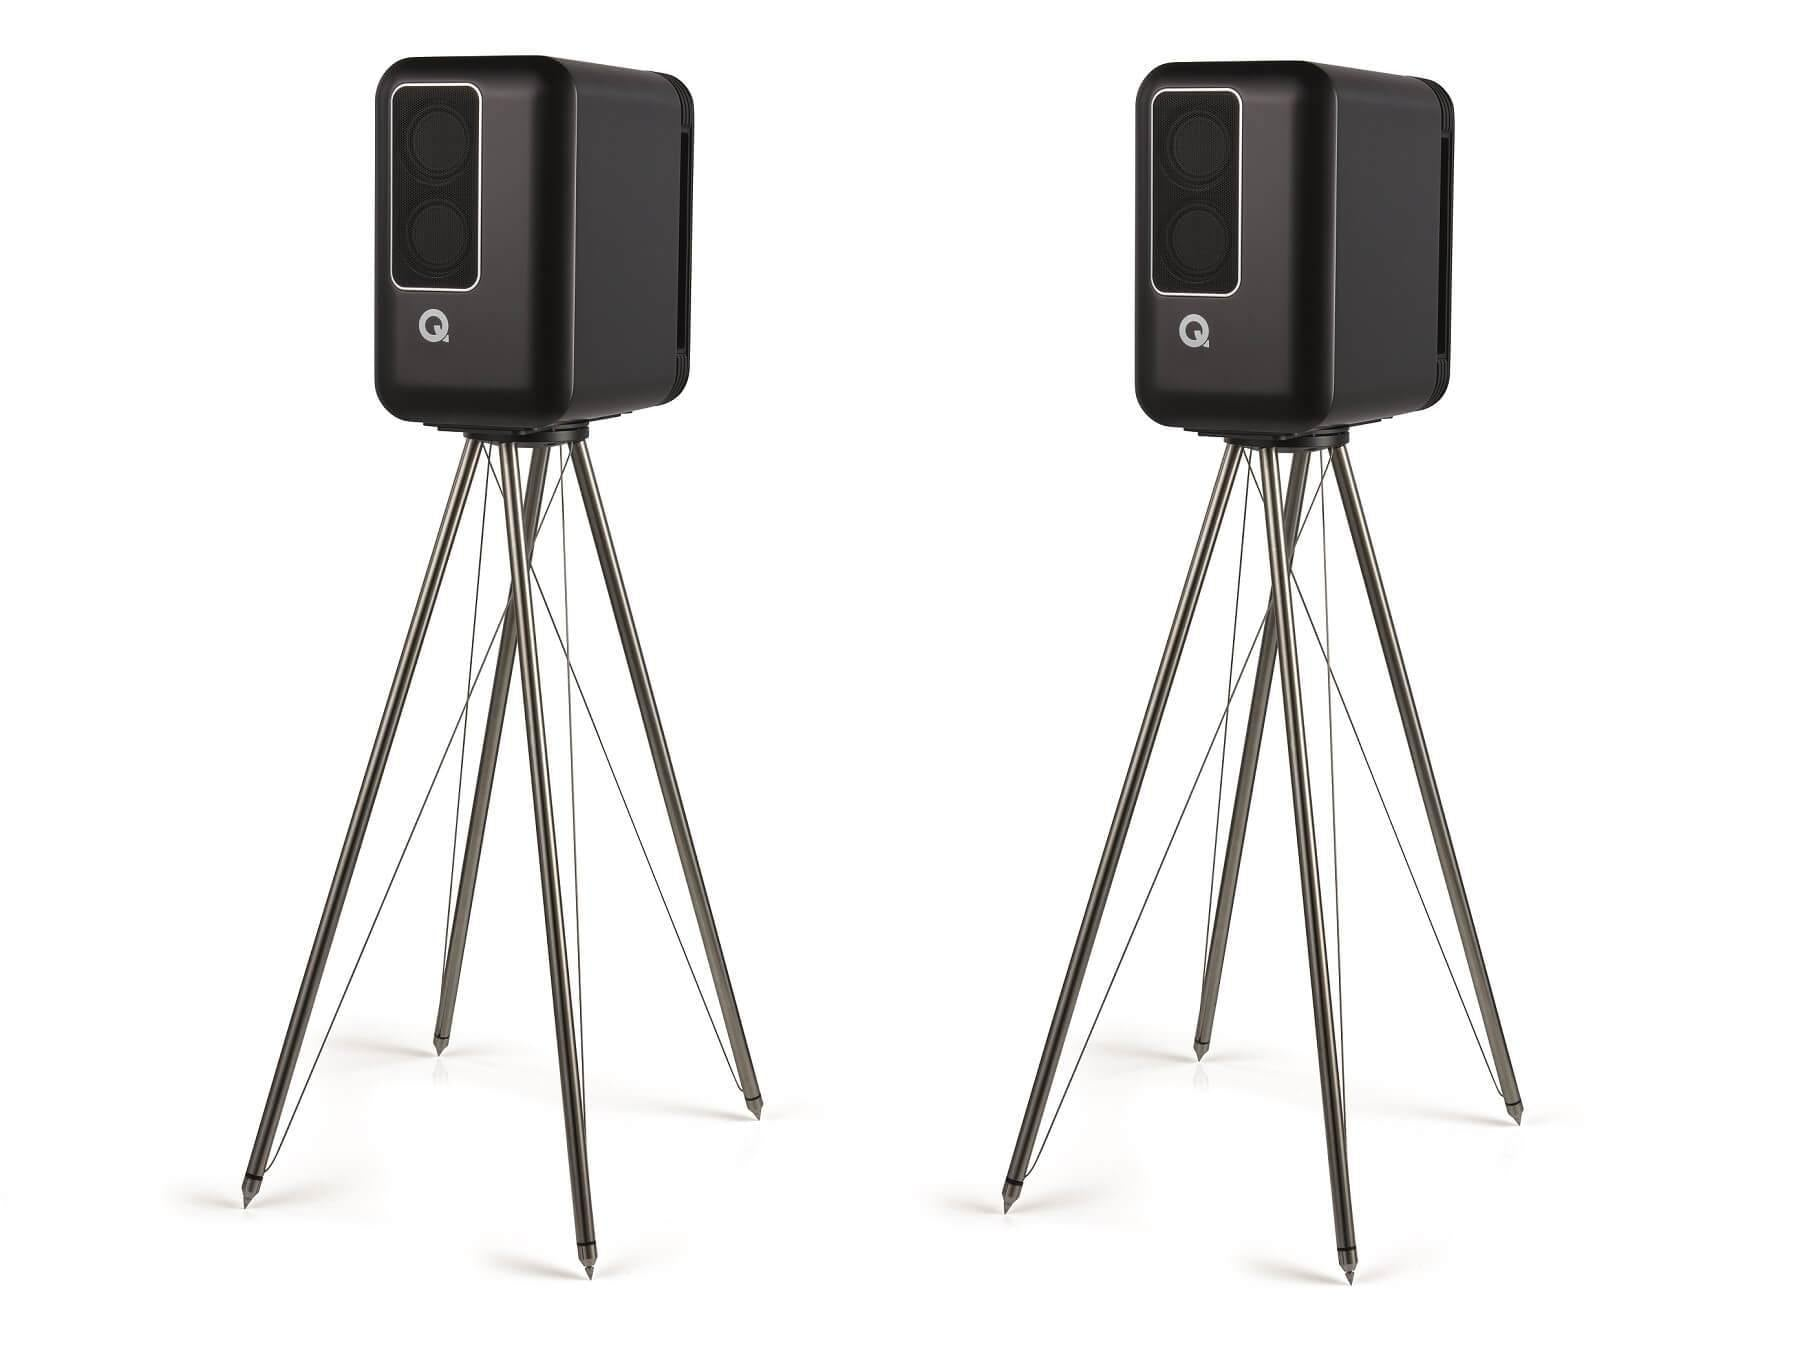 Q Acoustics Q Active 200 - Speakers and Stands Black